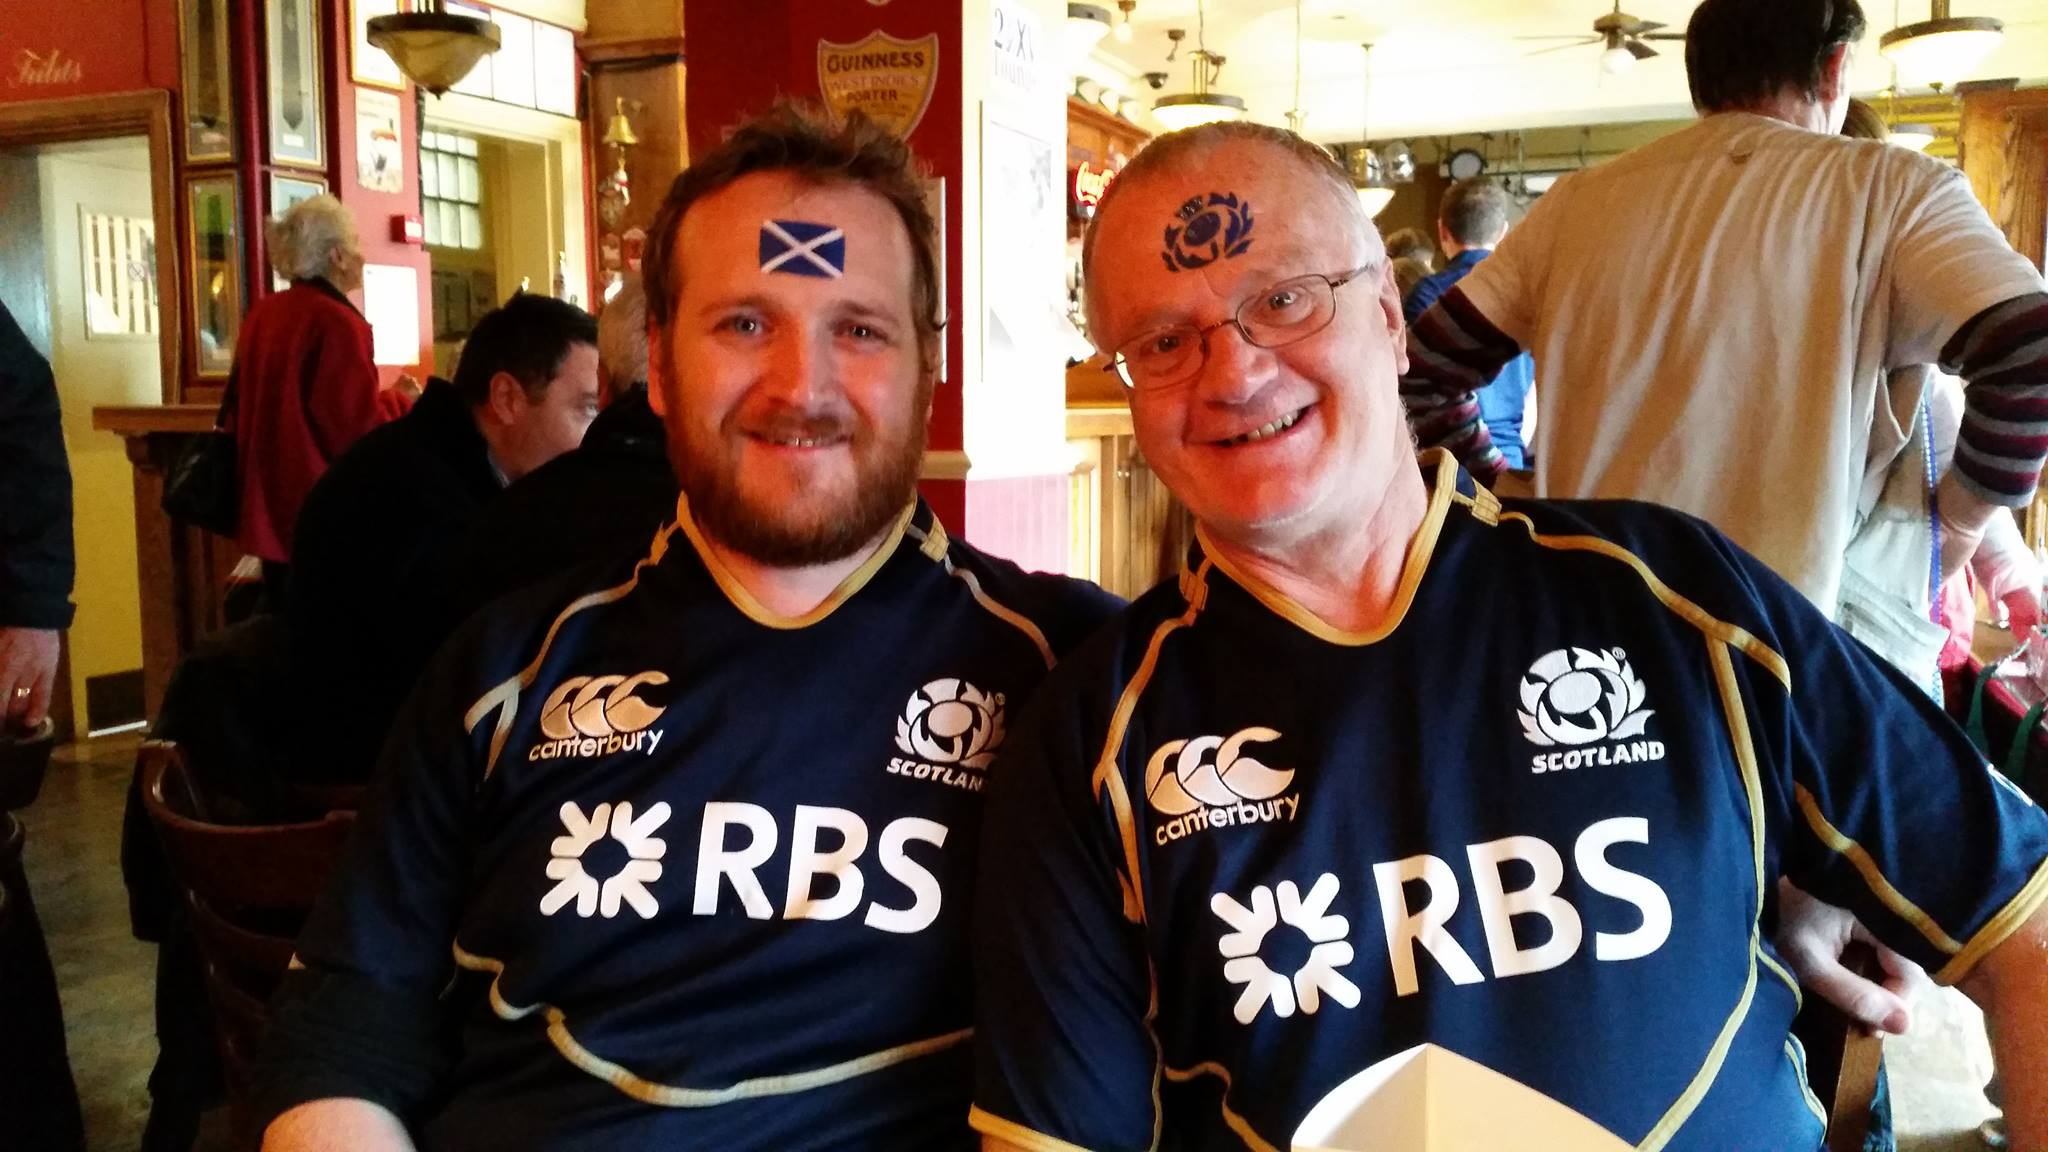 Ash and Russ. Scotland won.